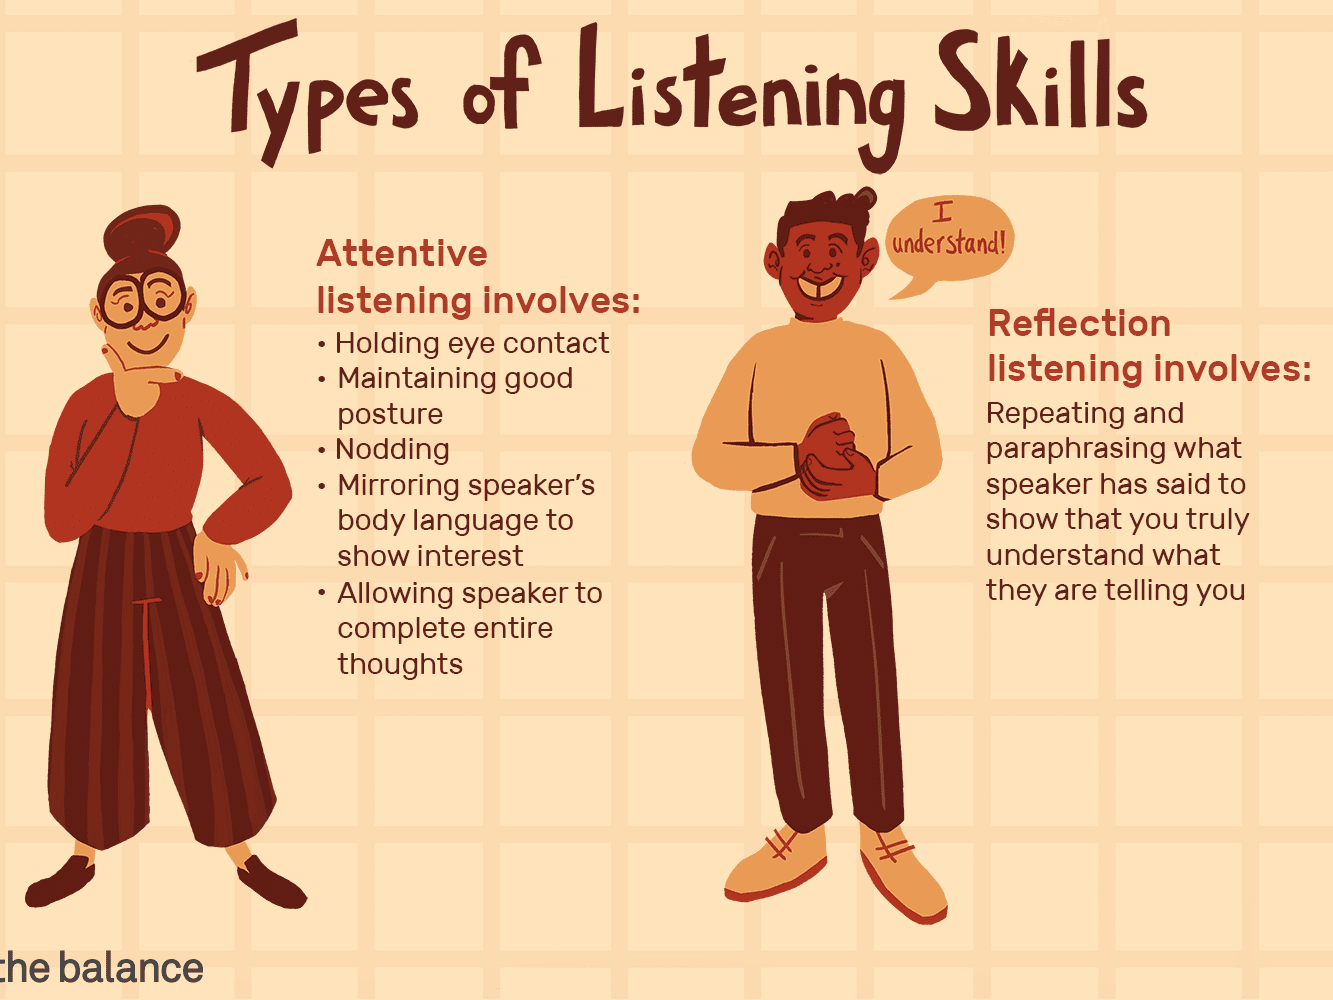 Types of Listening Skills With Examples